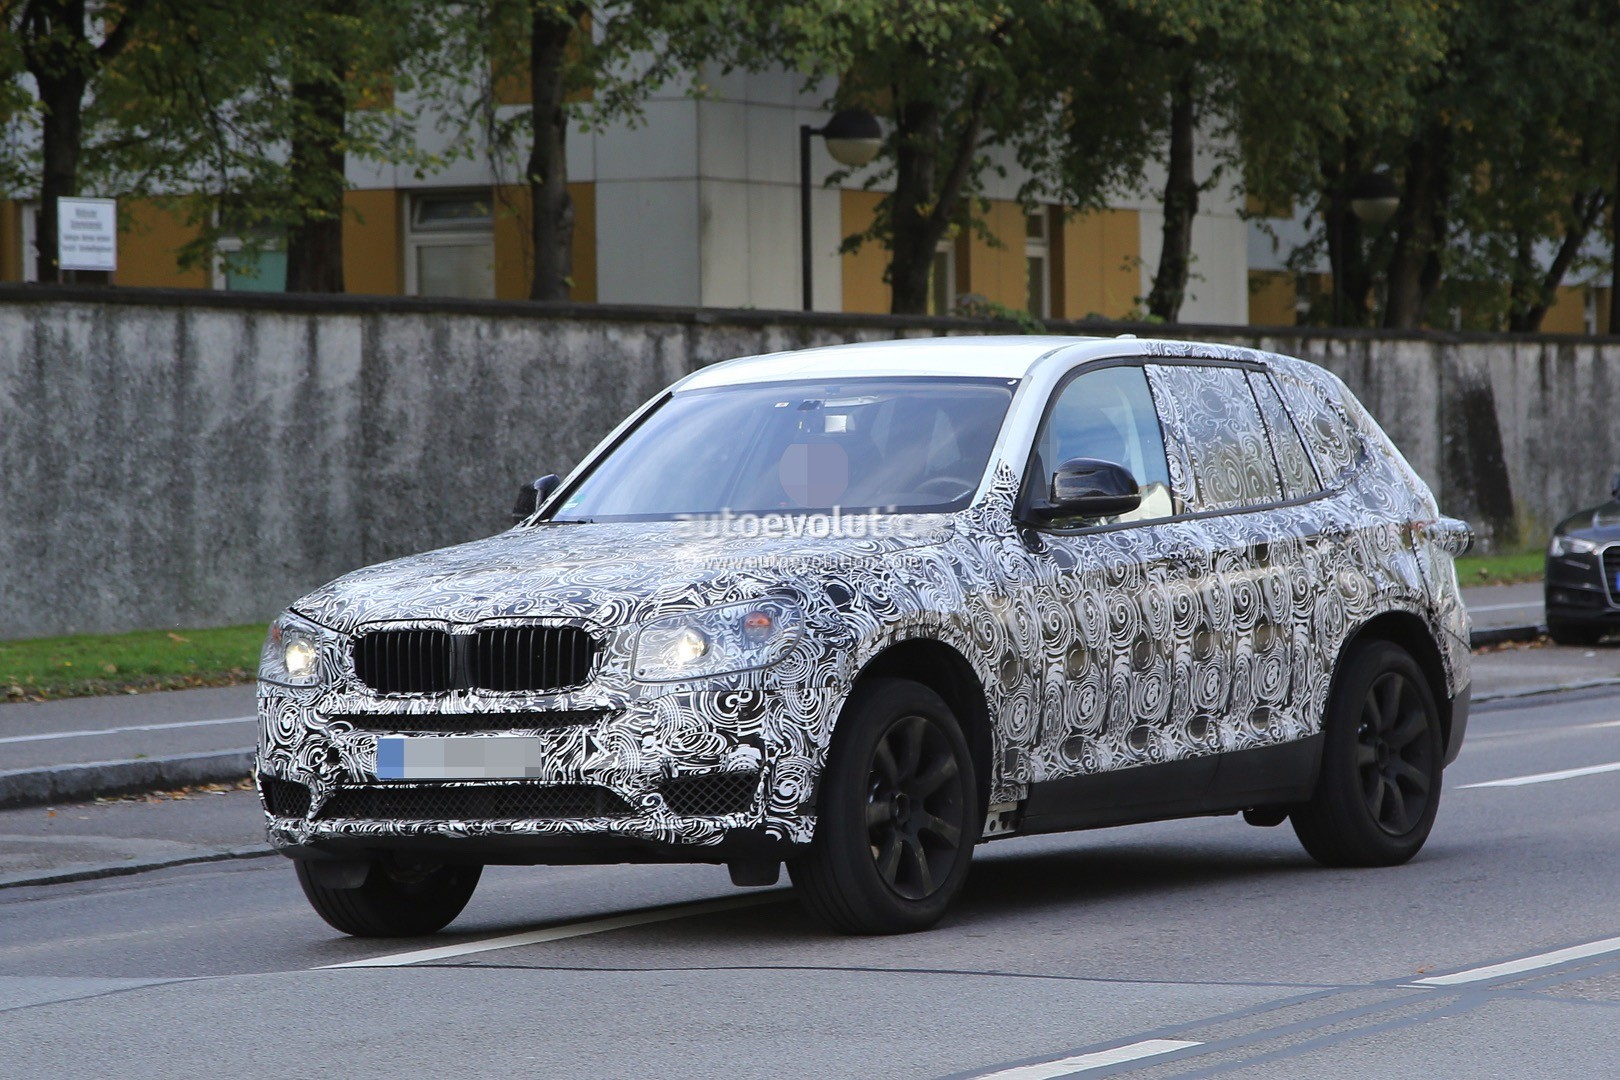 spyshots 2017 bmw x3 rolls into view on public roads for the first time autoevolution. Black Bedroom Furniture Sets. Home Design Ideas